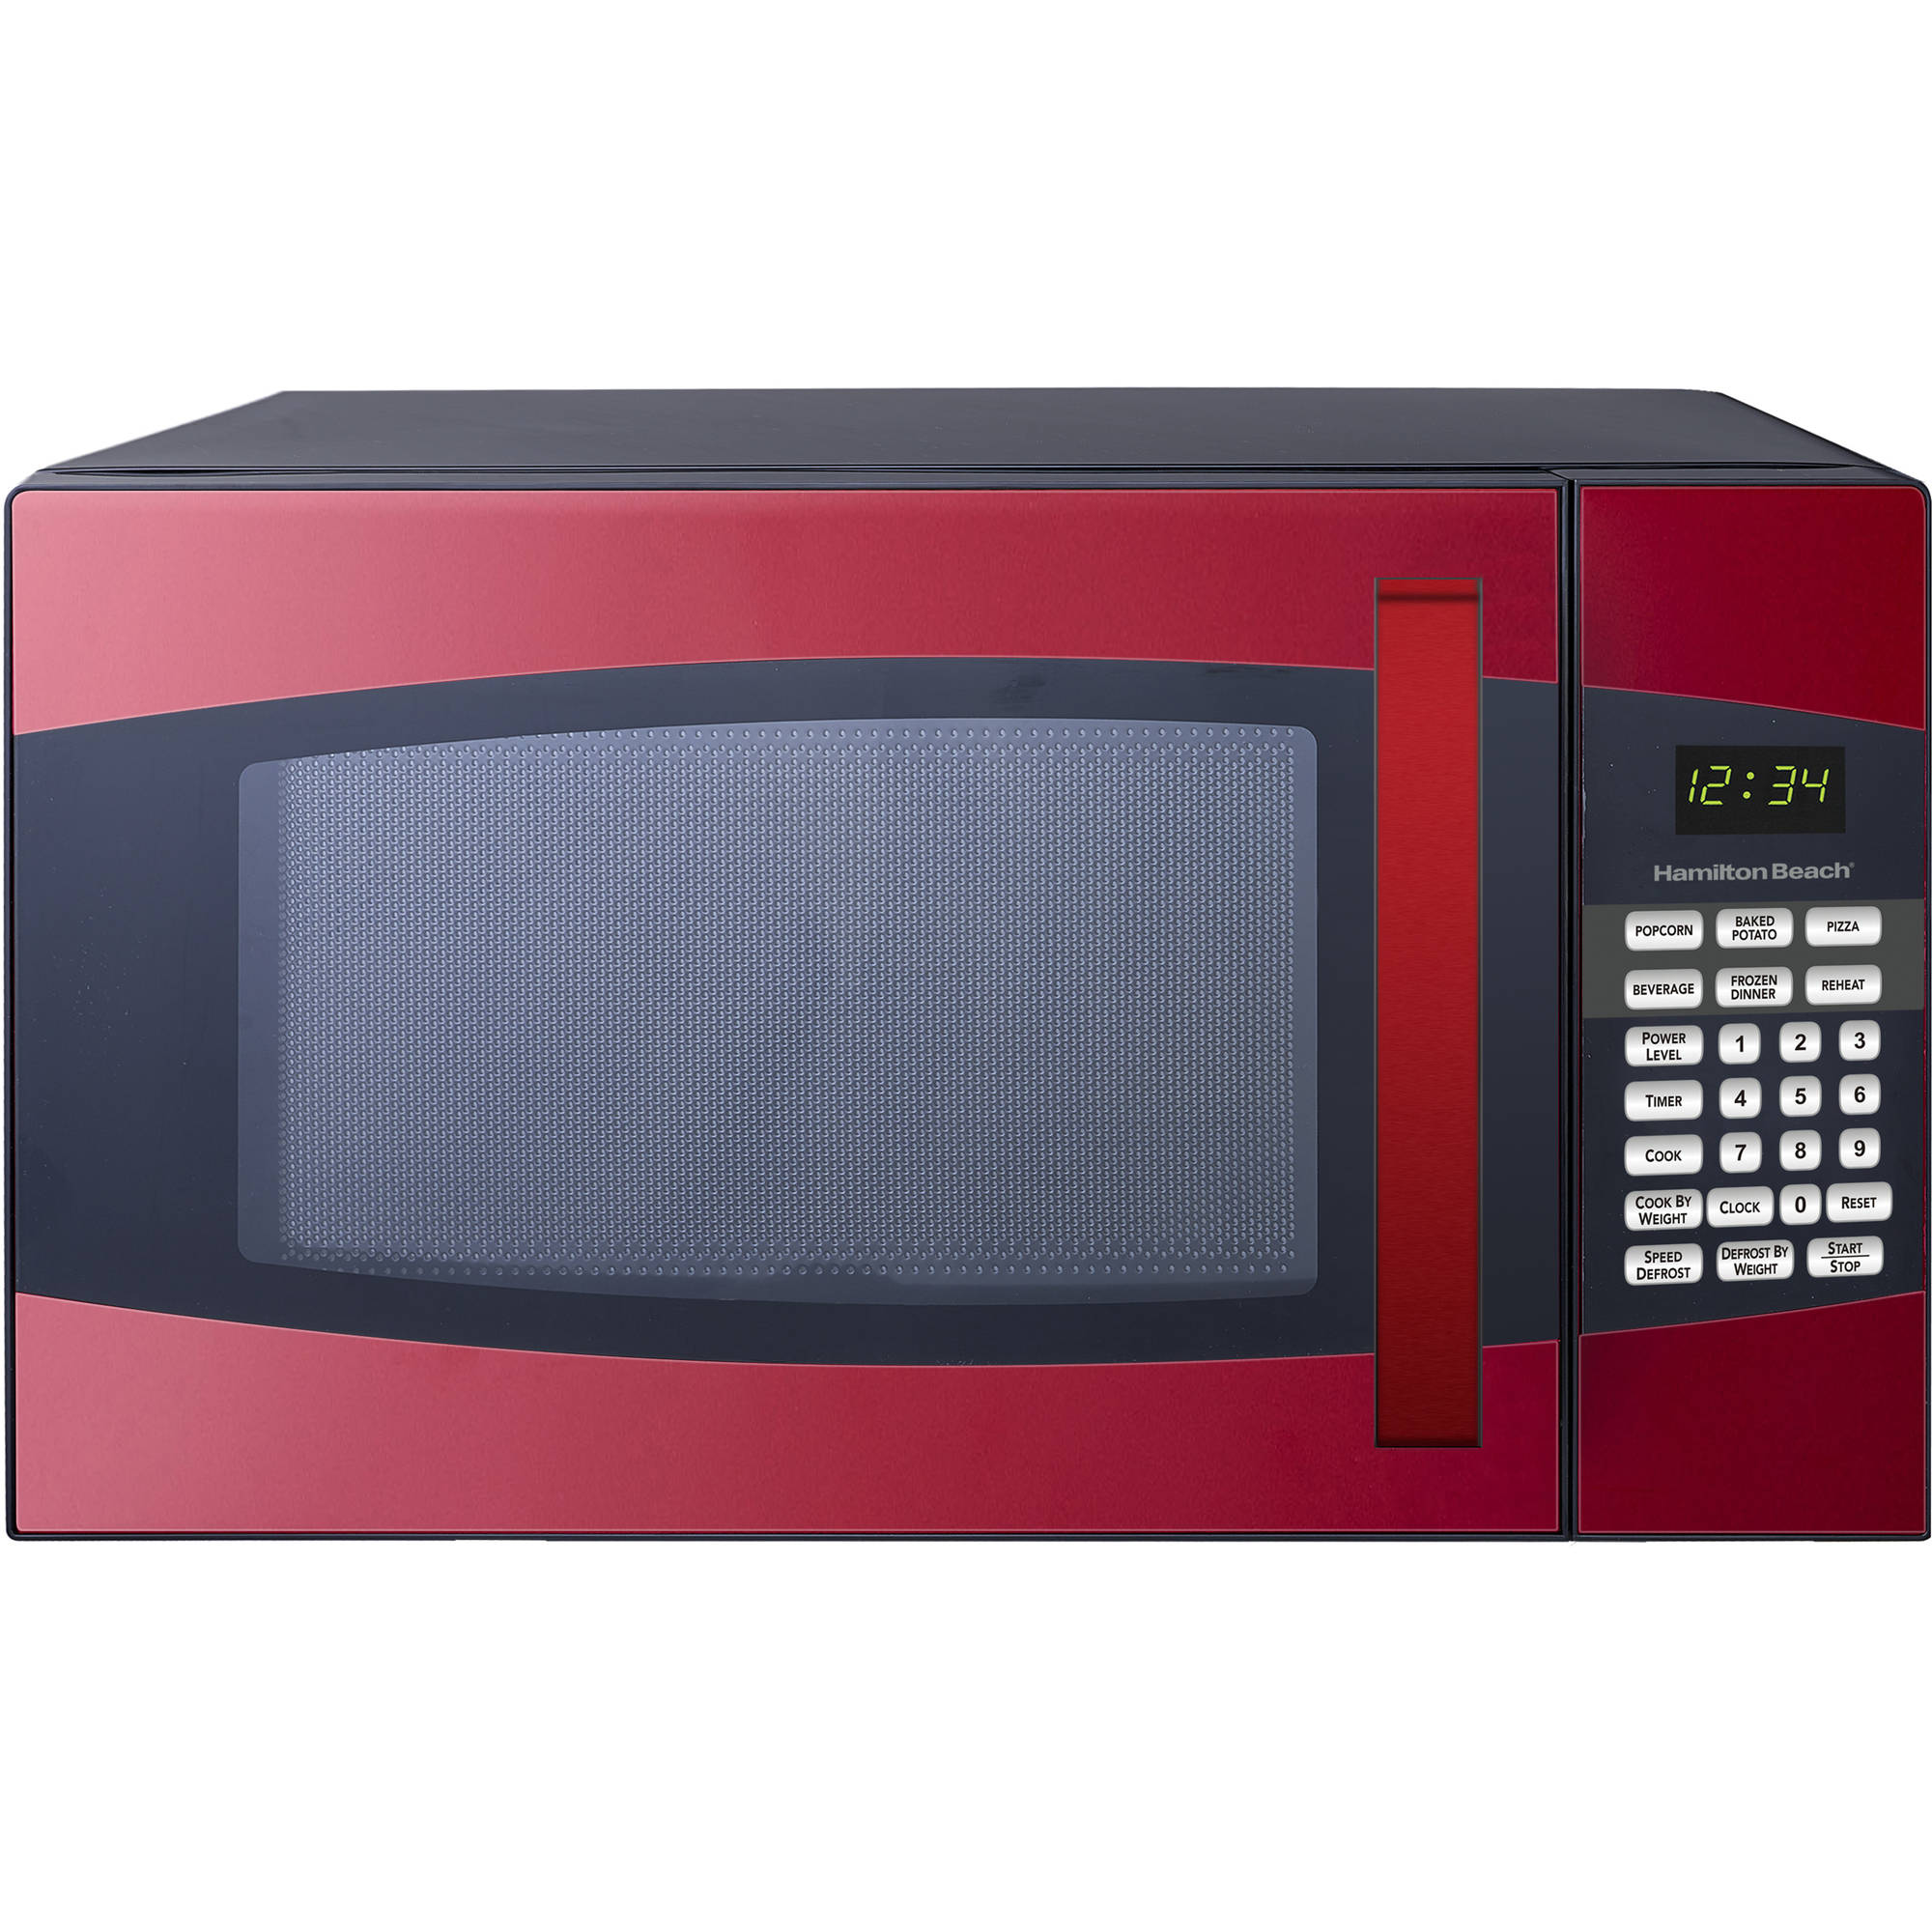 Microwave Oven Black Red